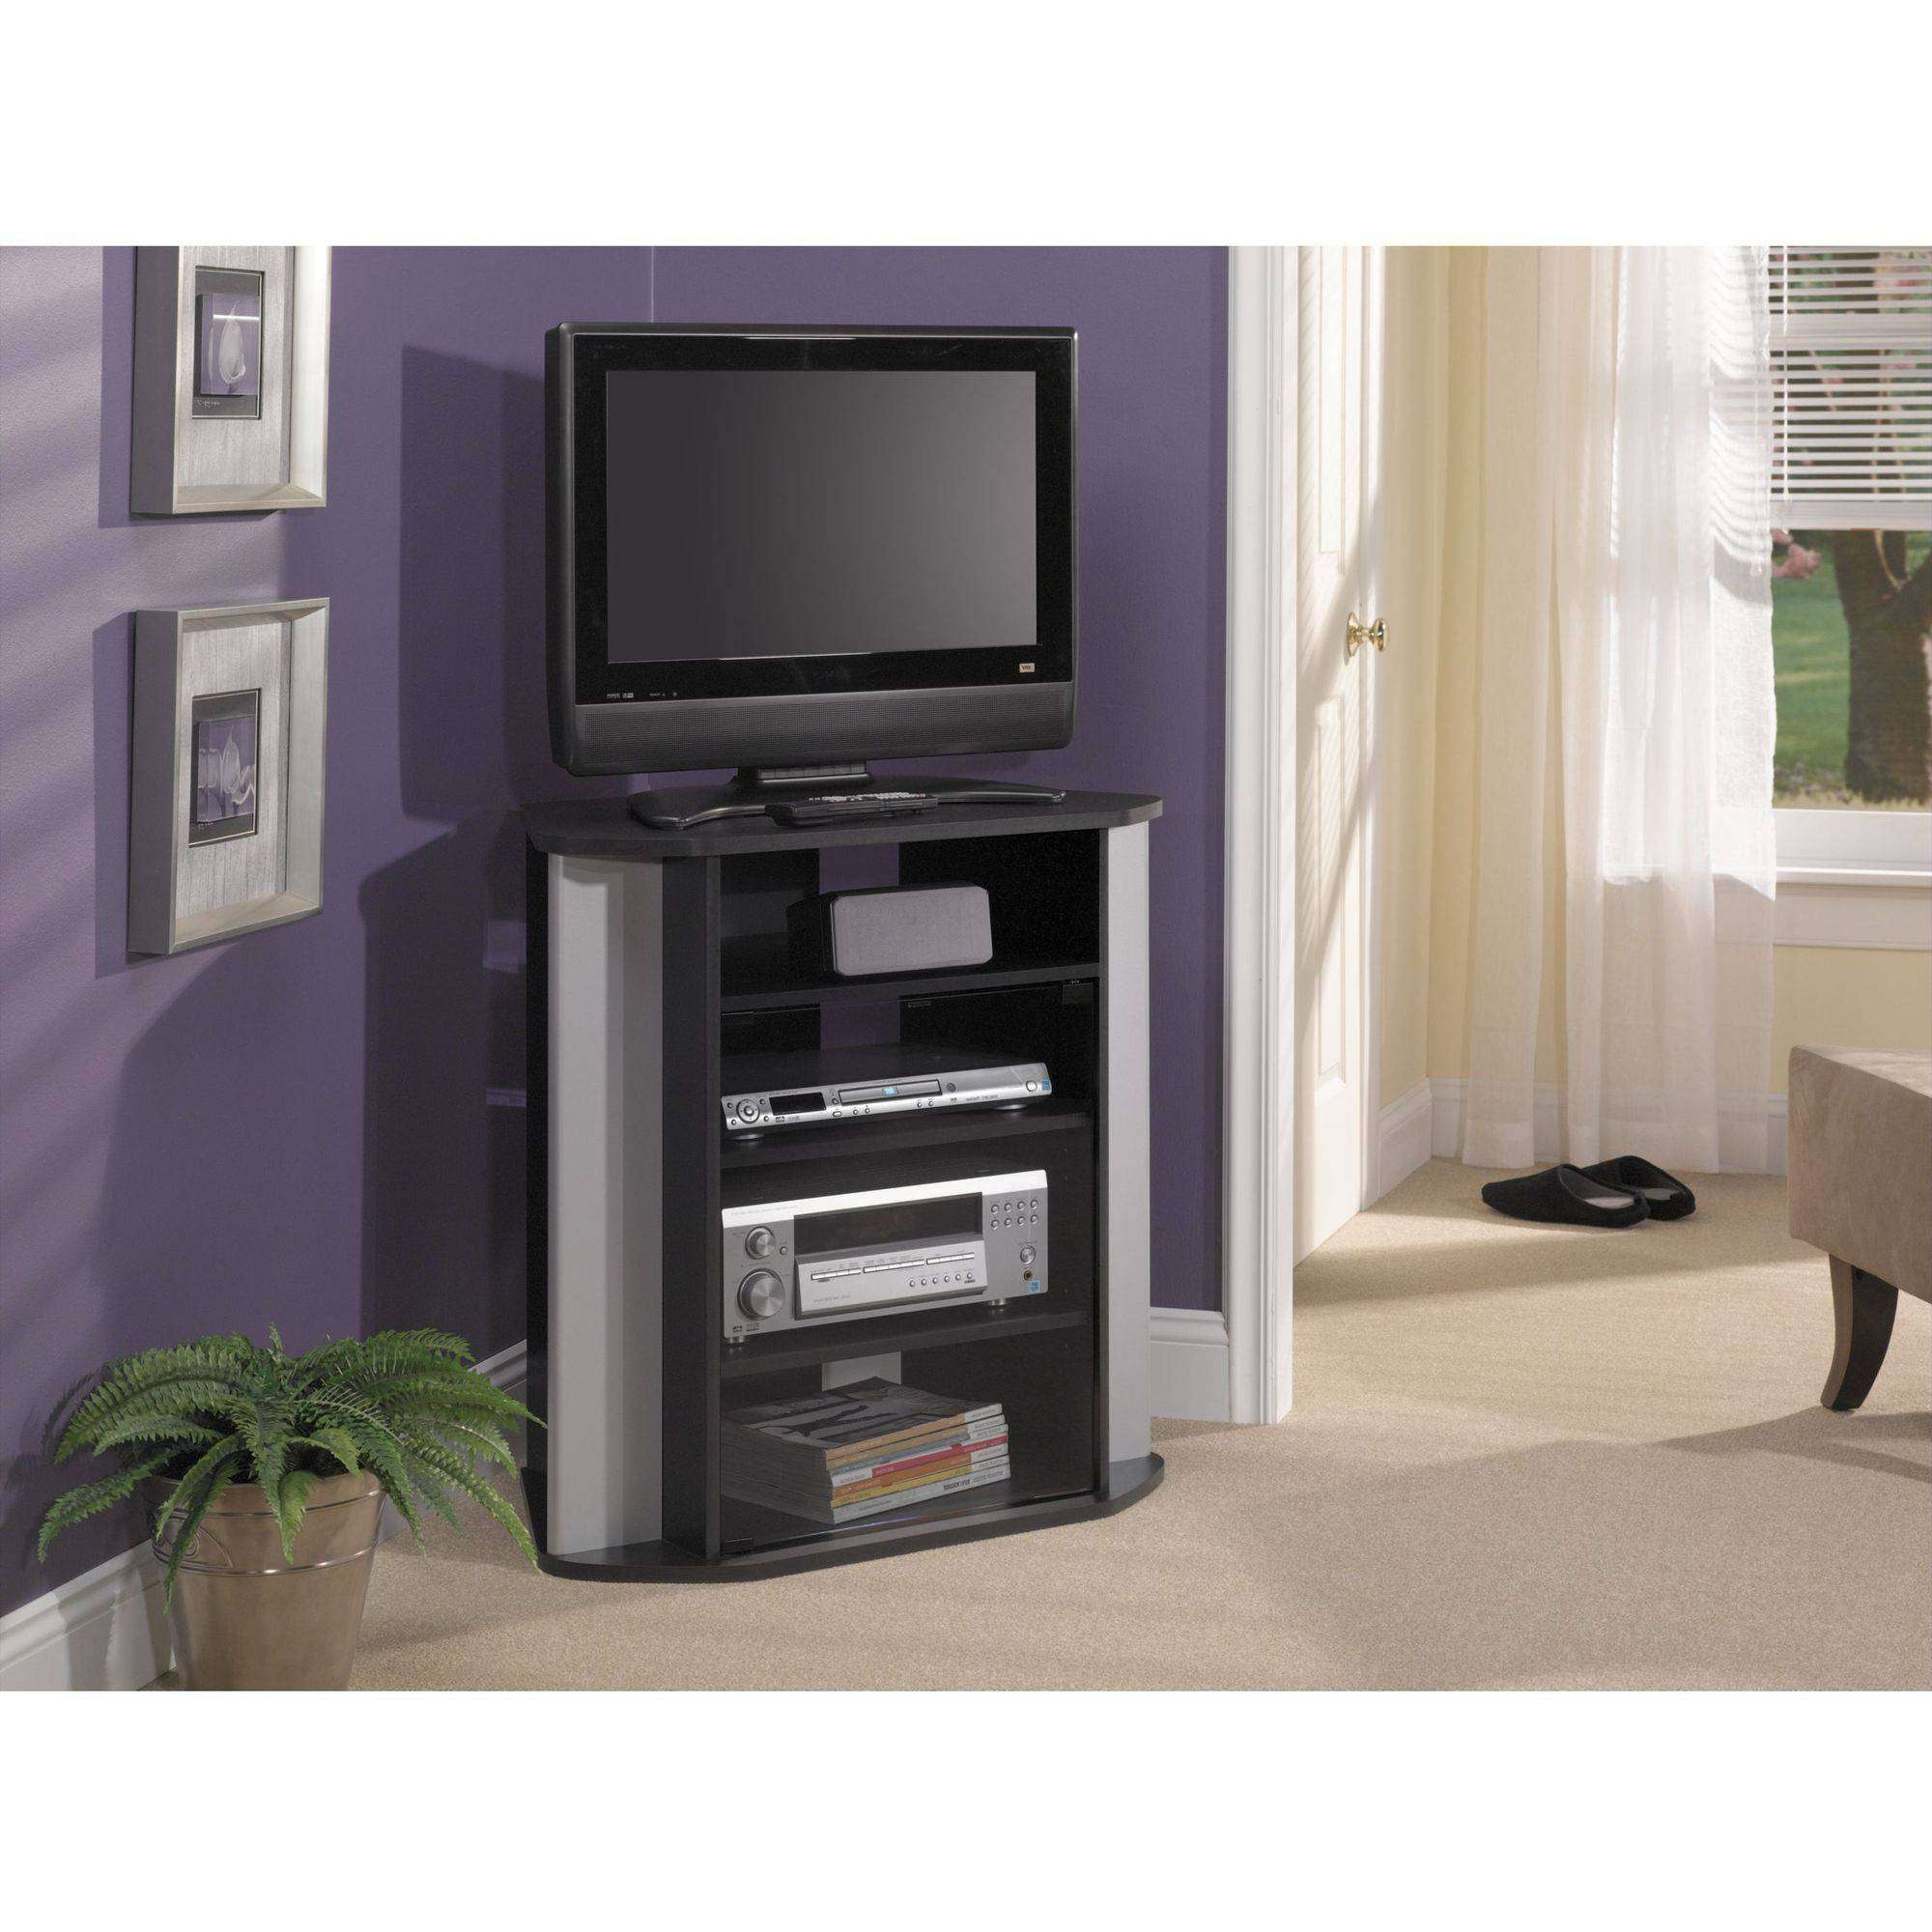 Tall Skinny Tv Stand With Regard To Tall Skinny Tv Stands (View 8 of 15)